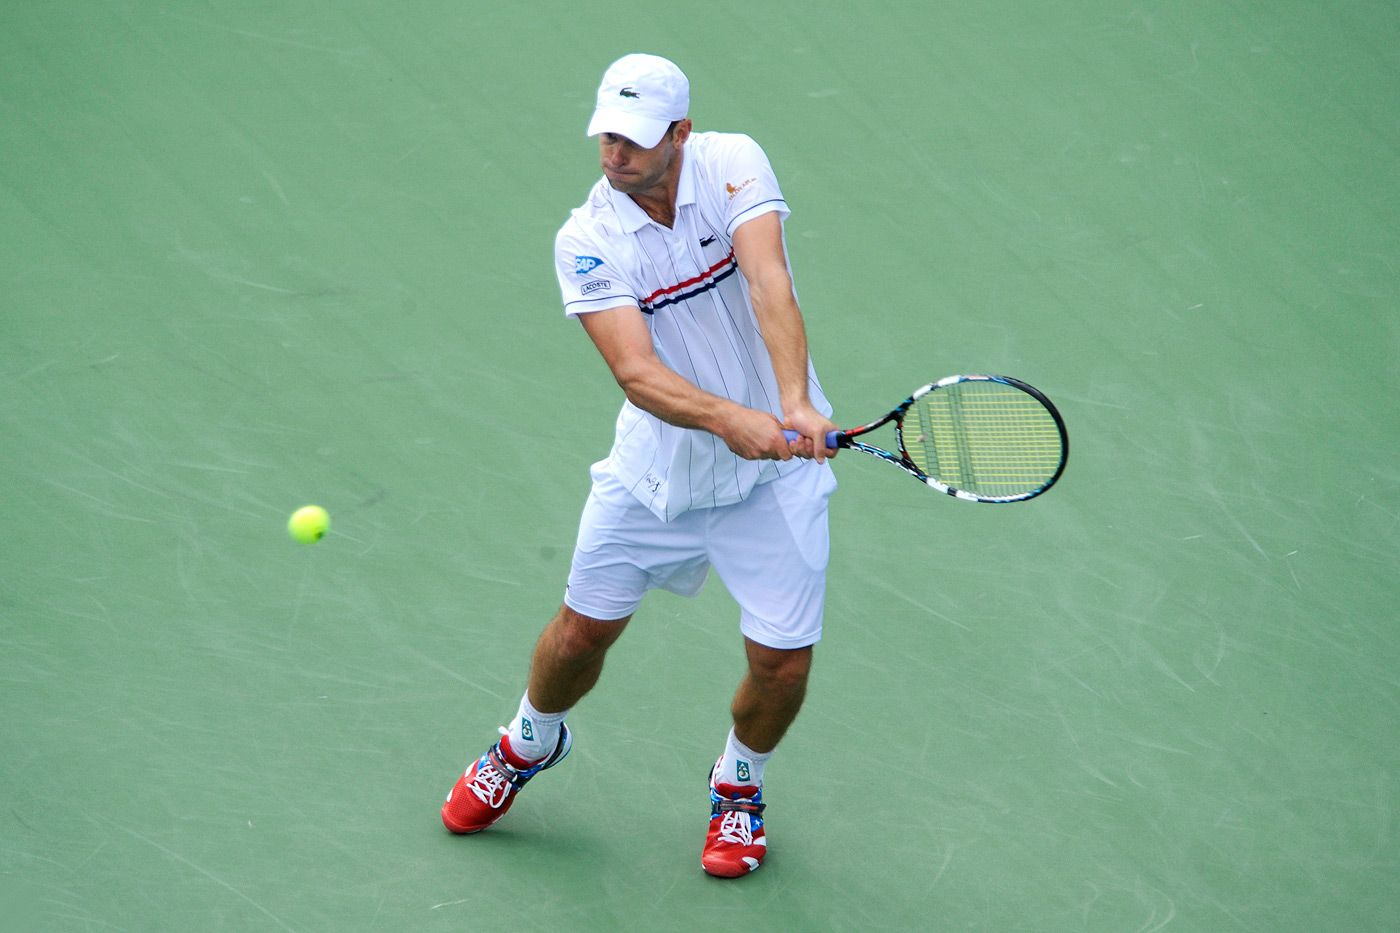 Andy Roddick Usa 20 In Action Against Juan Martin Del Potro Arg 7 Andrew Ong Usta Sports Tennis Players Tennis